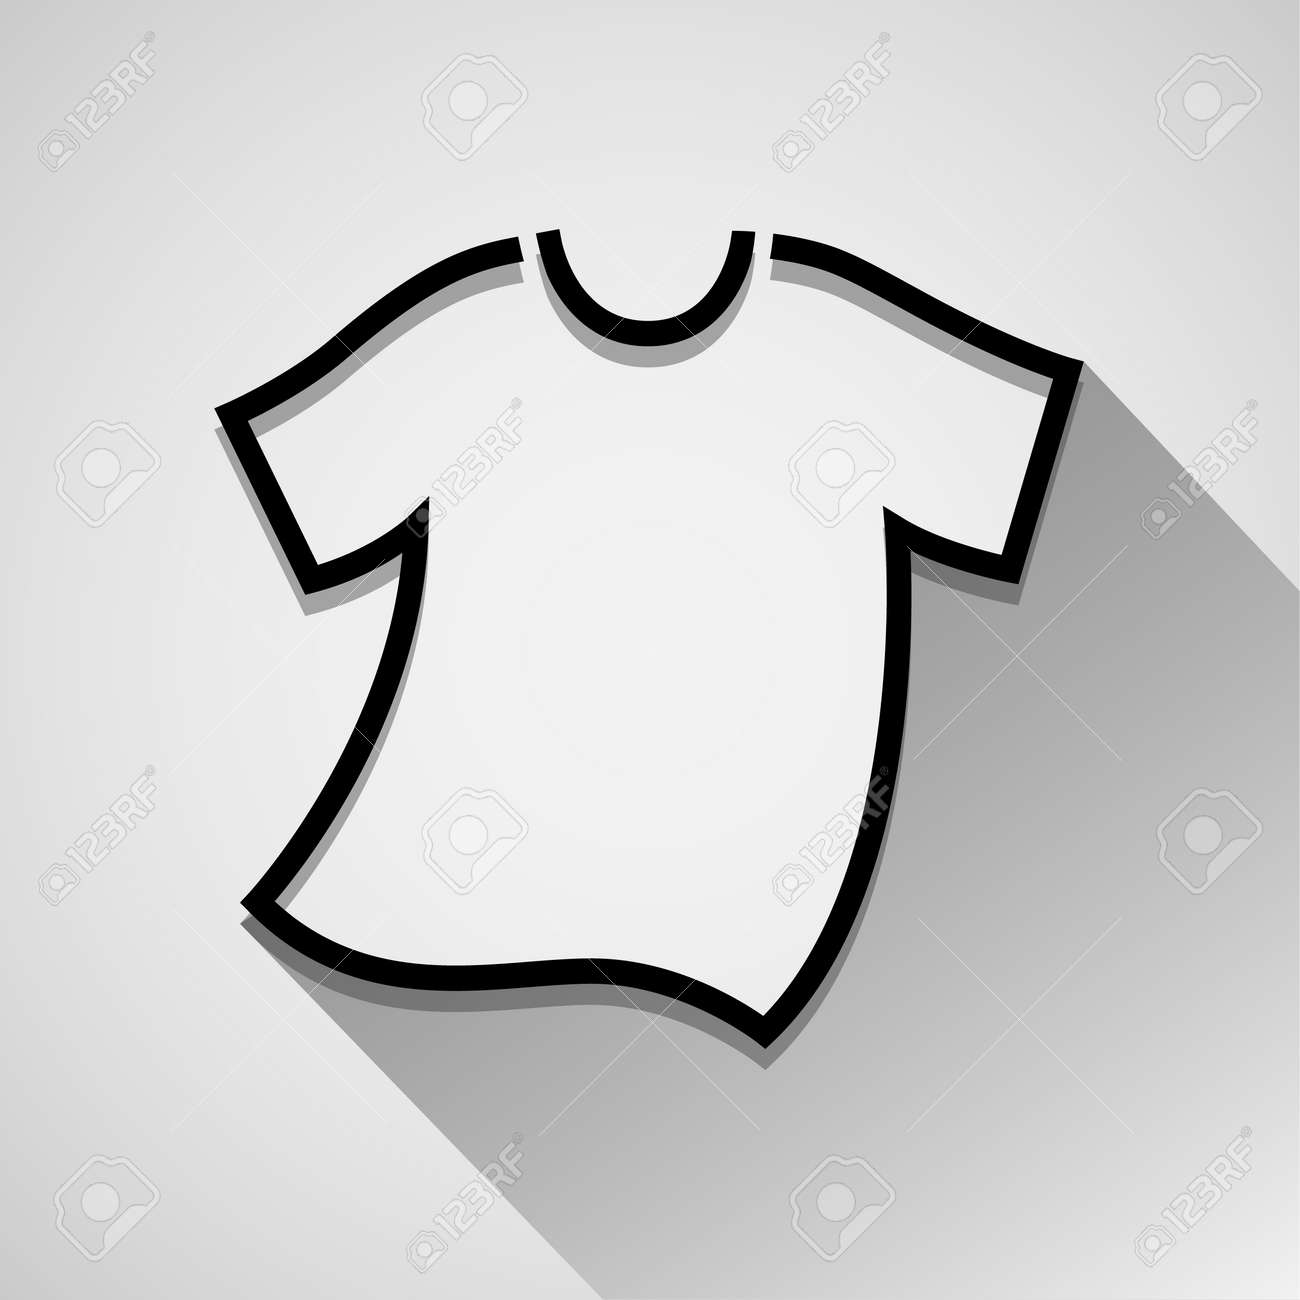 t shirt icon royalty free cliparts vectors and stock illustration image 37517008 t shirt icon